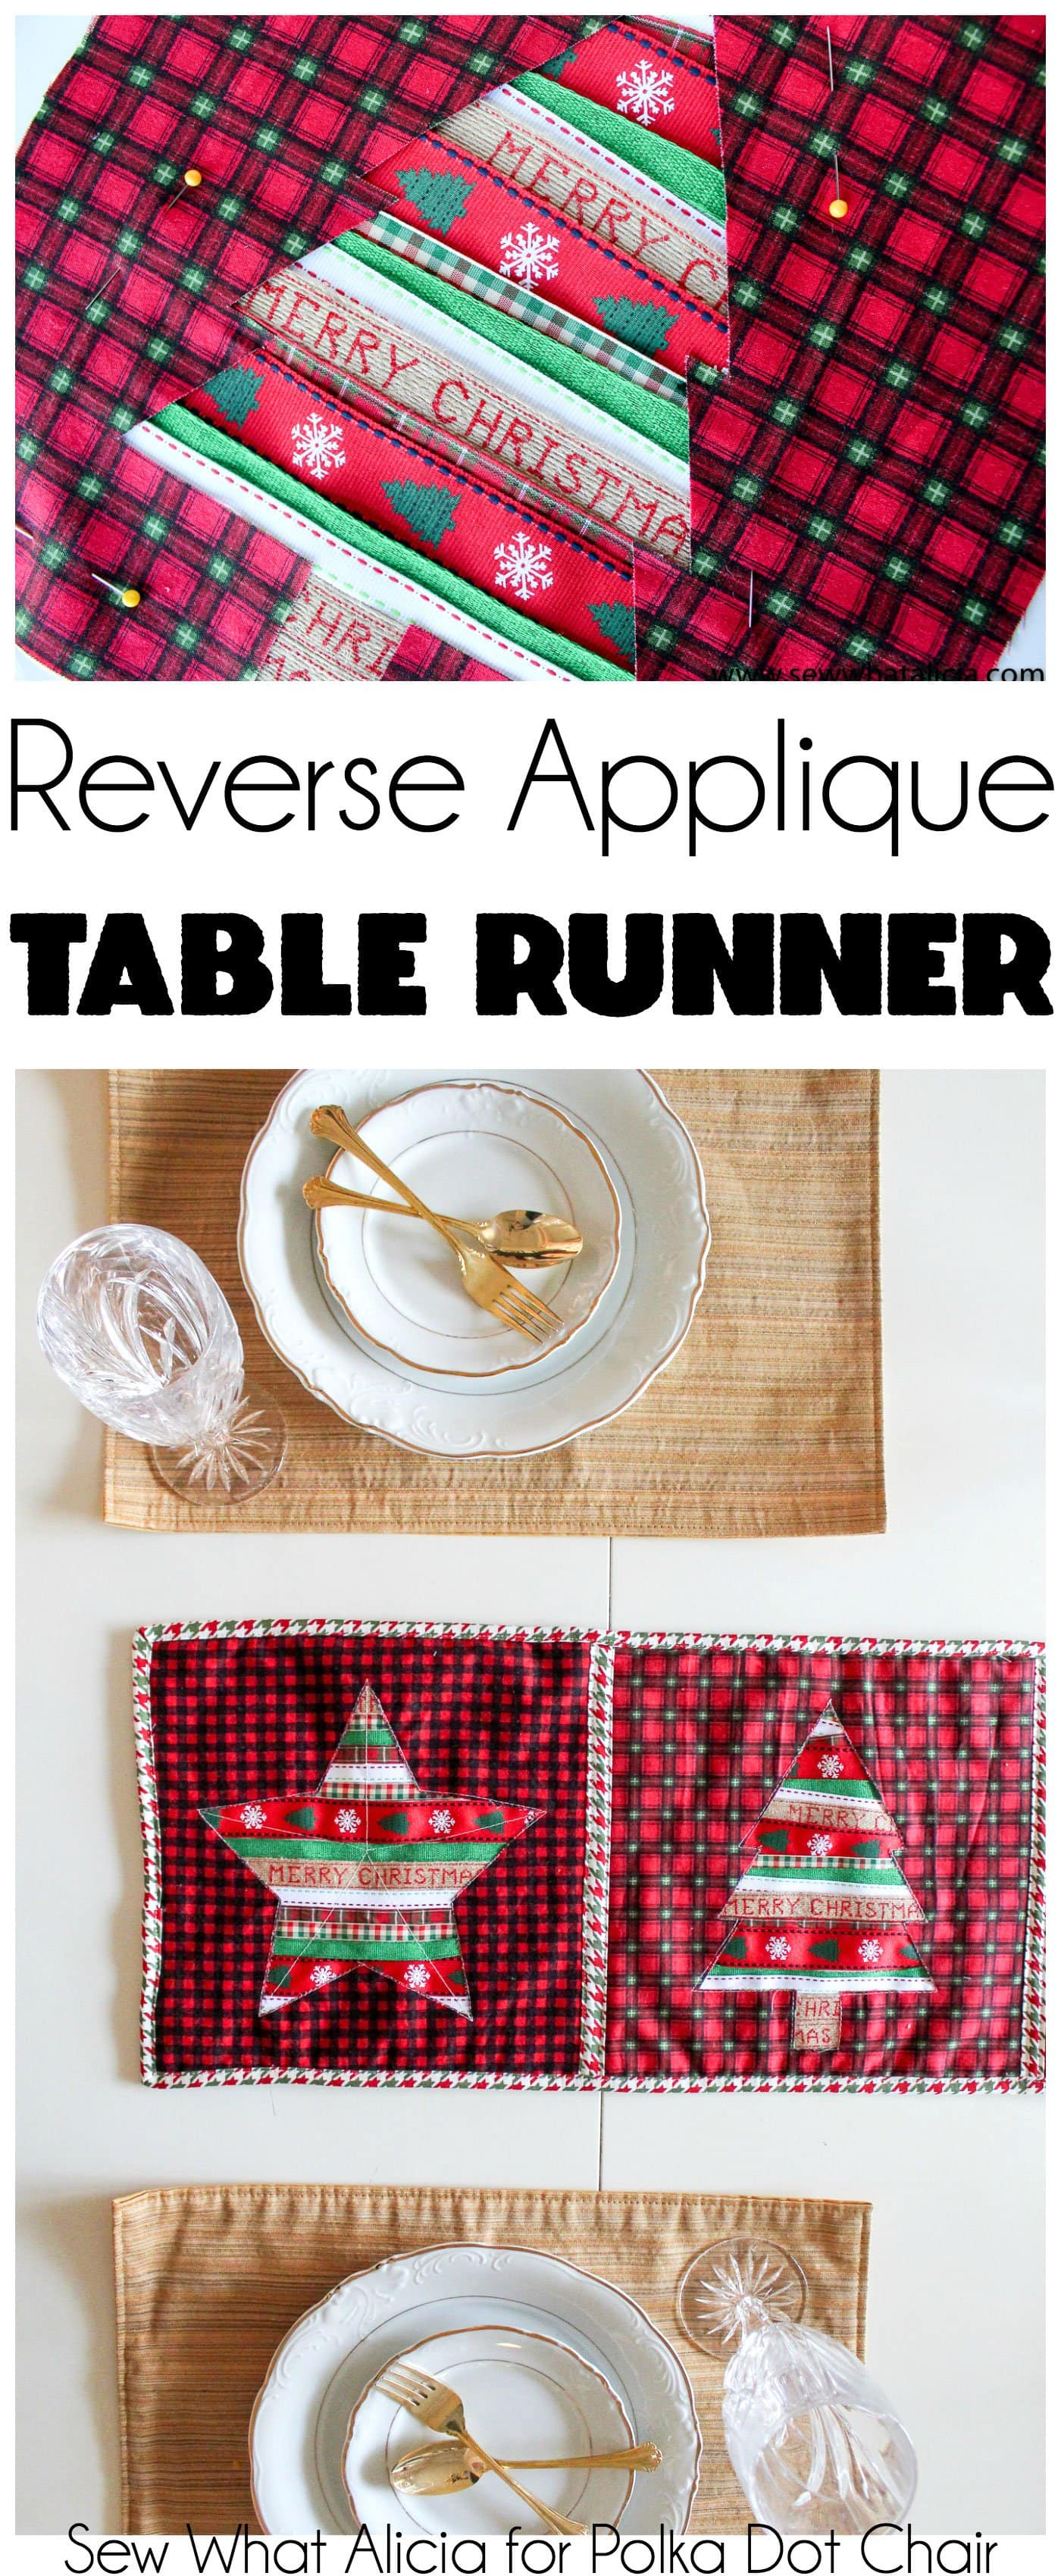 Reverse Applique Christmas Table Runner Tutorial The